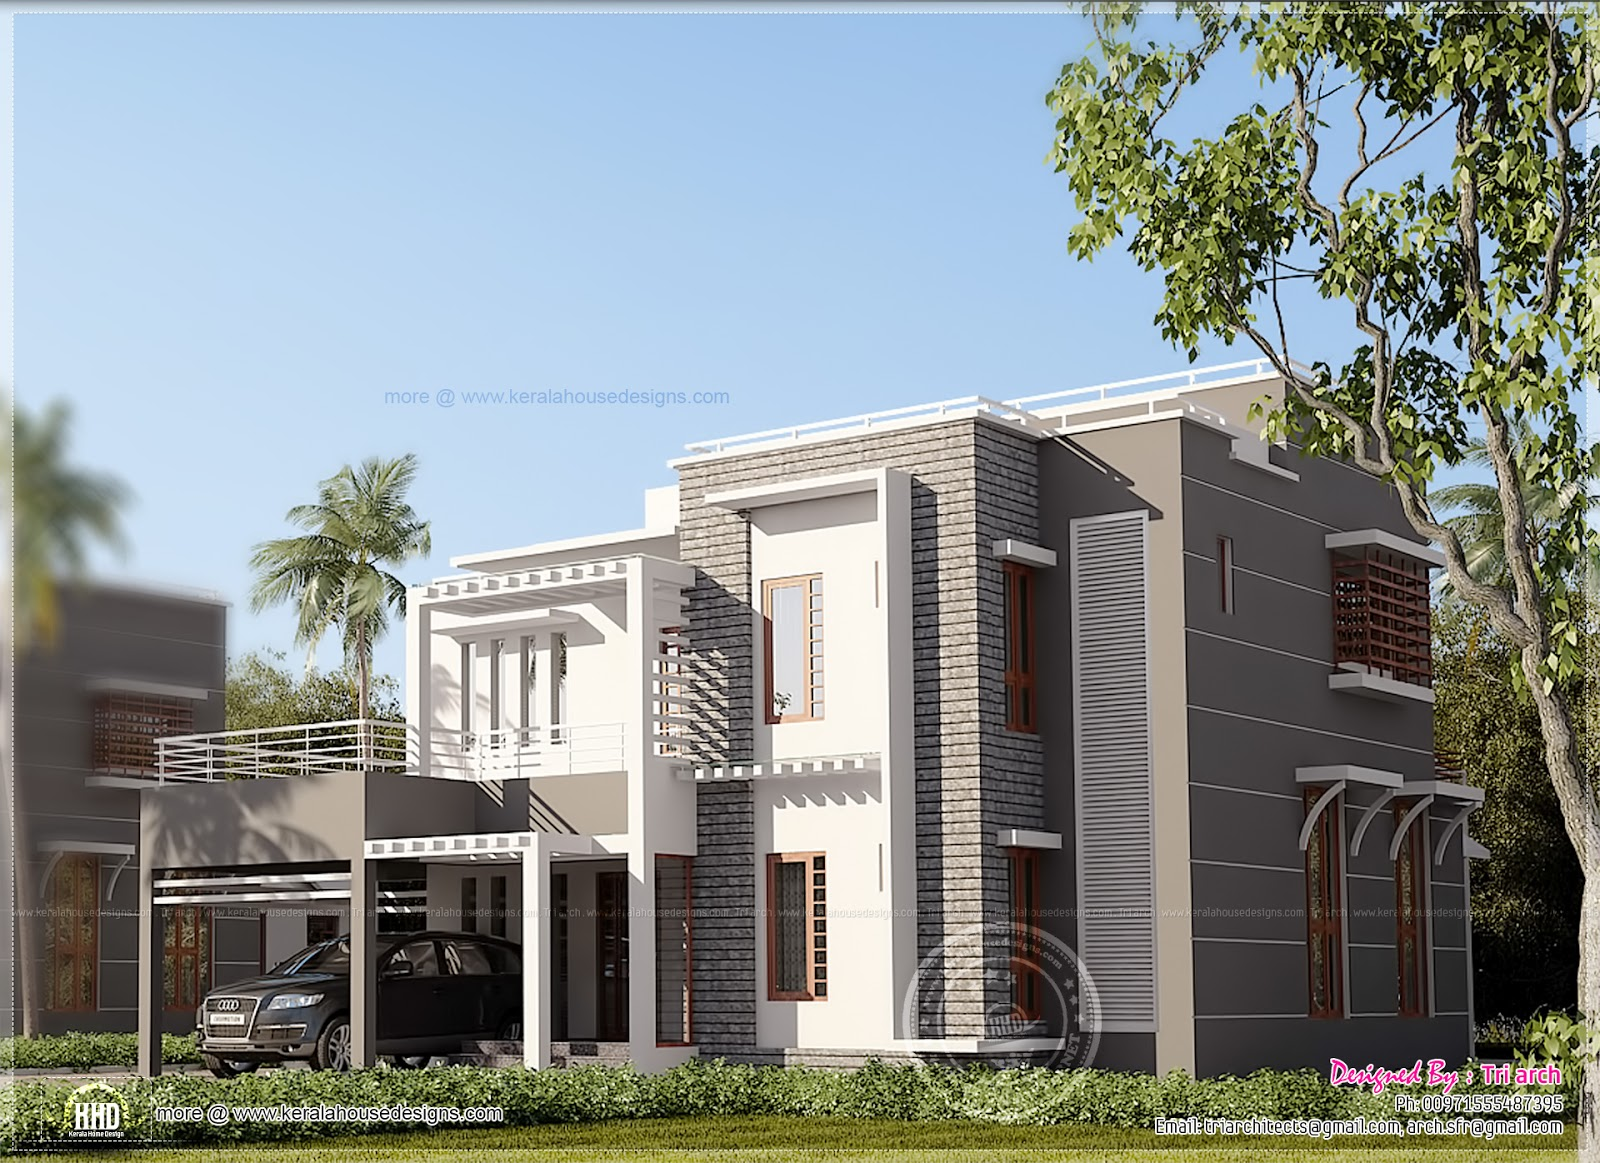 Contemporary home design in kerala kerala home design for Modern house in kerala